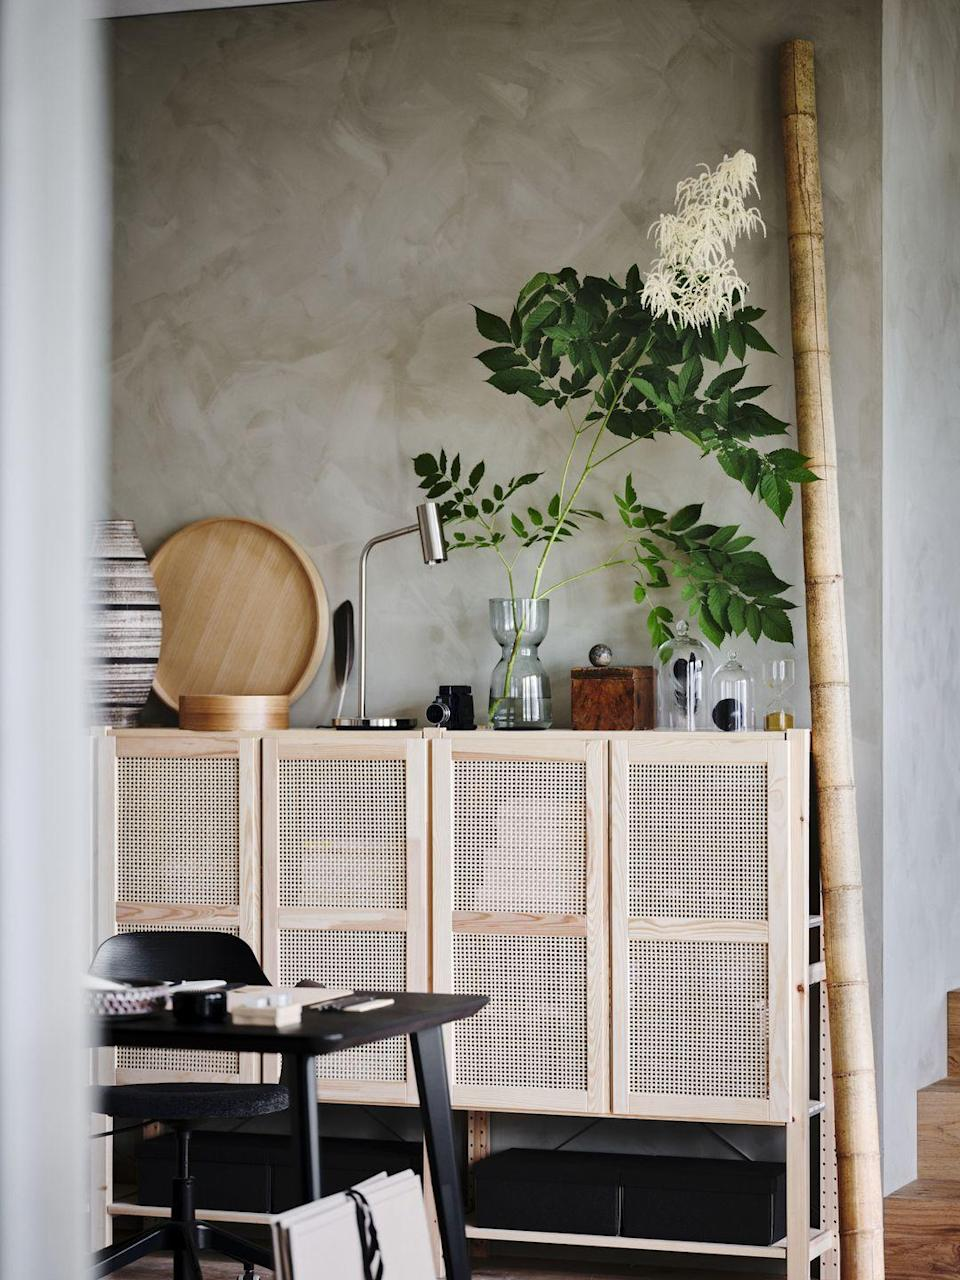 """<p>Taking inspiration from <a href=""""https://www.housebeautiful.com/uk/decorate/g35007654/pinterest-2021-home-decortrends/"""" rel=""""nofollow noopener"""" target=""""_blank"""" data-ylk=""""slk:Japandi"""" class=""""link rapid-noclick-resp"""">Japandi</a> — a Japanese and Scandinavian hybrid — the Home Sanctuary range taps into the higher demand for harmony and wellbeing at home. Whether you're keeping a lookout for gorgeous storage units or mood-boosting <a href=""""https://www.housebeautiful.com/uk/decorate/living-room/g32357518/living-room-accessories/"""" rel=""""nofollow noopener"""" target=""""_blank"""" data-ylk=""""slk:accessories"""" class=""""link rapid-noclick-resp"""">accessories</a>, IKEA offers plenty of solutions for making the most of each room in your house. </p>"""